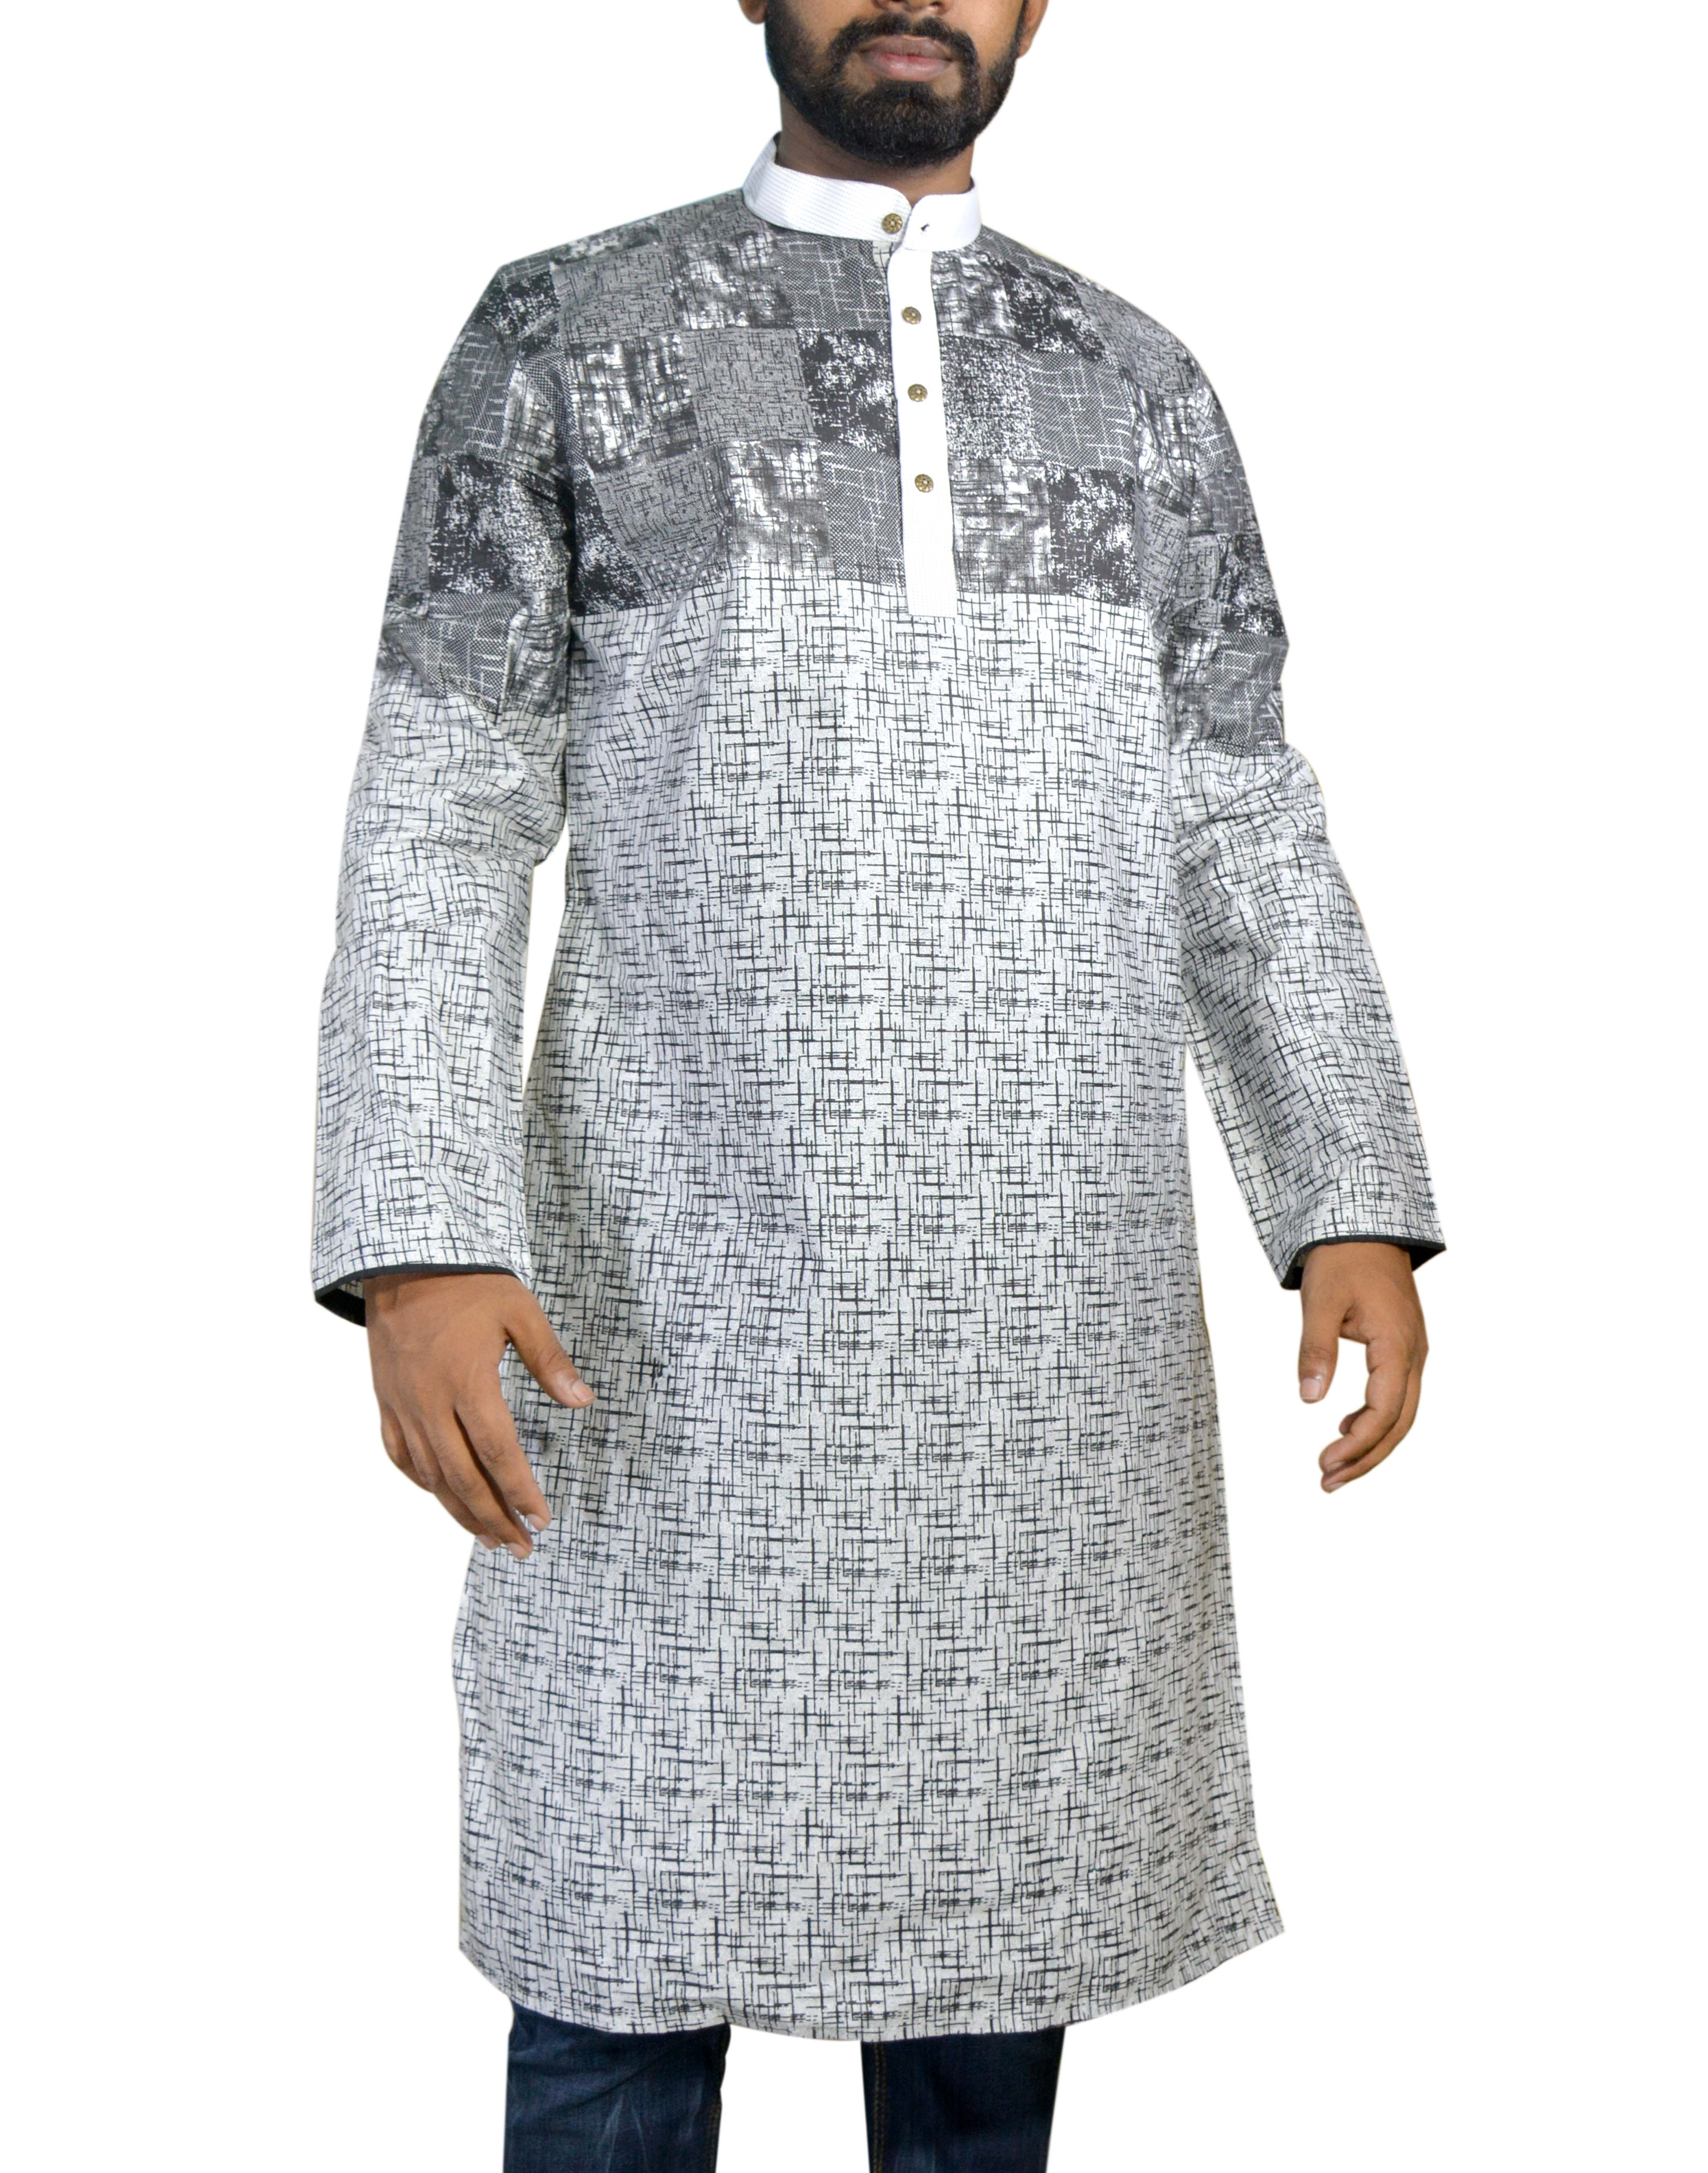 69bcfa7223 ... Slim Fit Cotton White Print fabric Collar Cuff and placket Black and  White Color mixed printed Stylish Button Export Quality Casual Punjabi for  Men ...